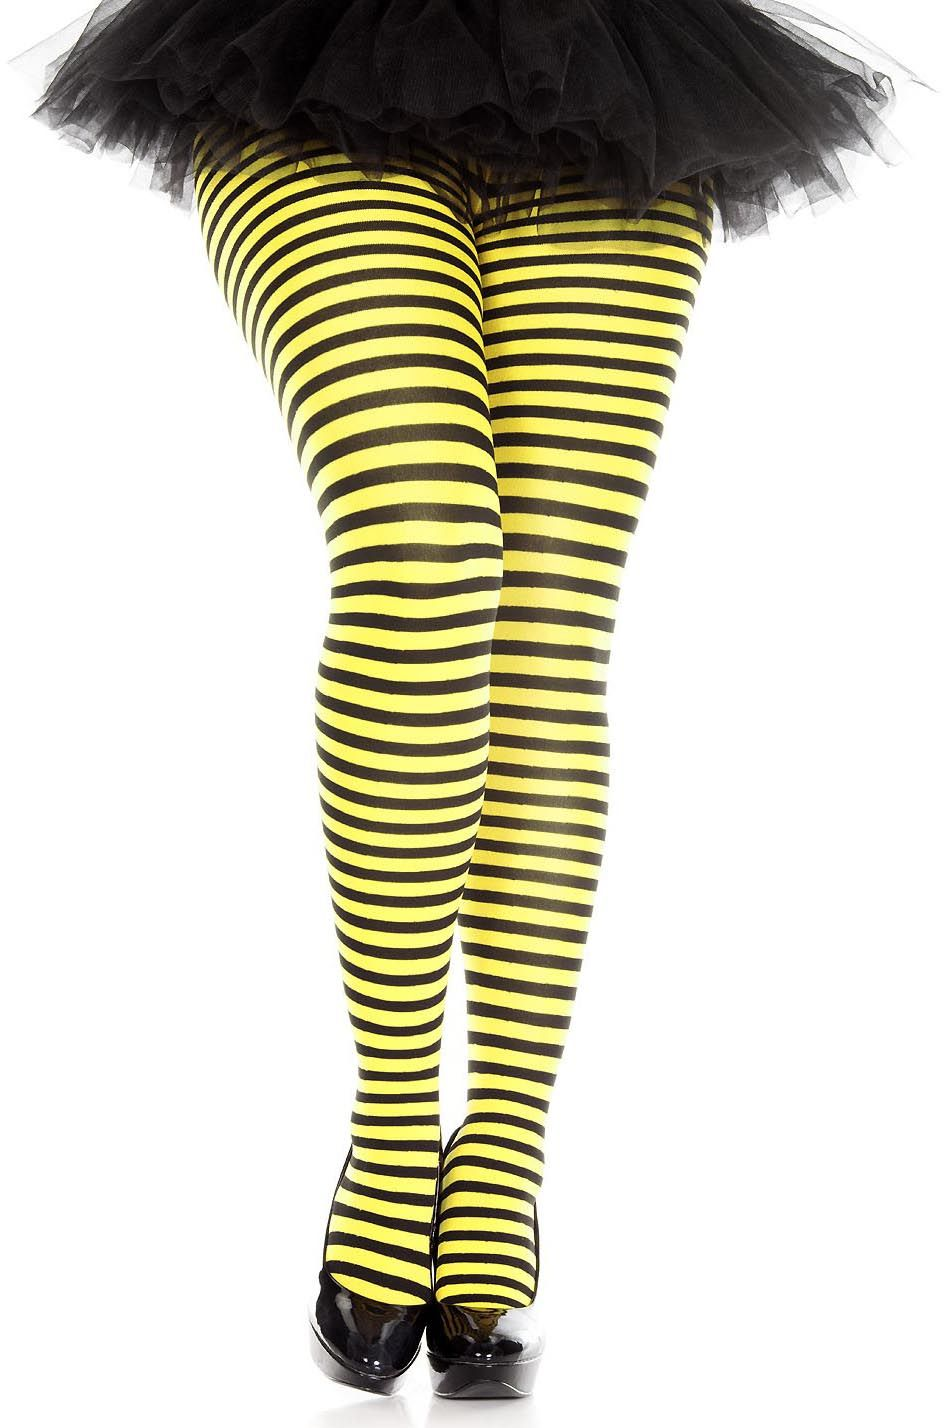 e1193a4b9a55c Plus Size Striped Tights - More Colors - Candy Apple Costumes ...